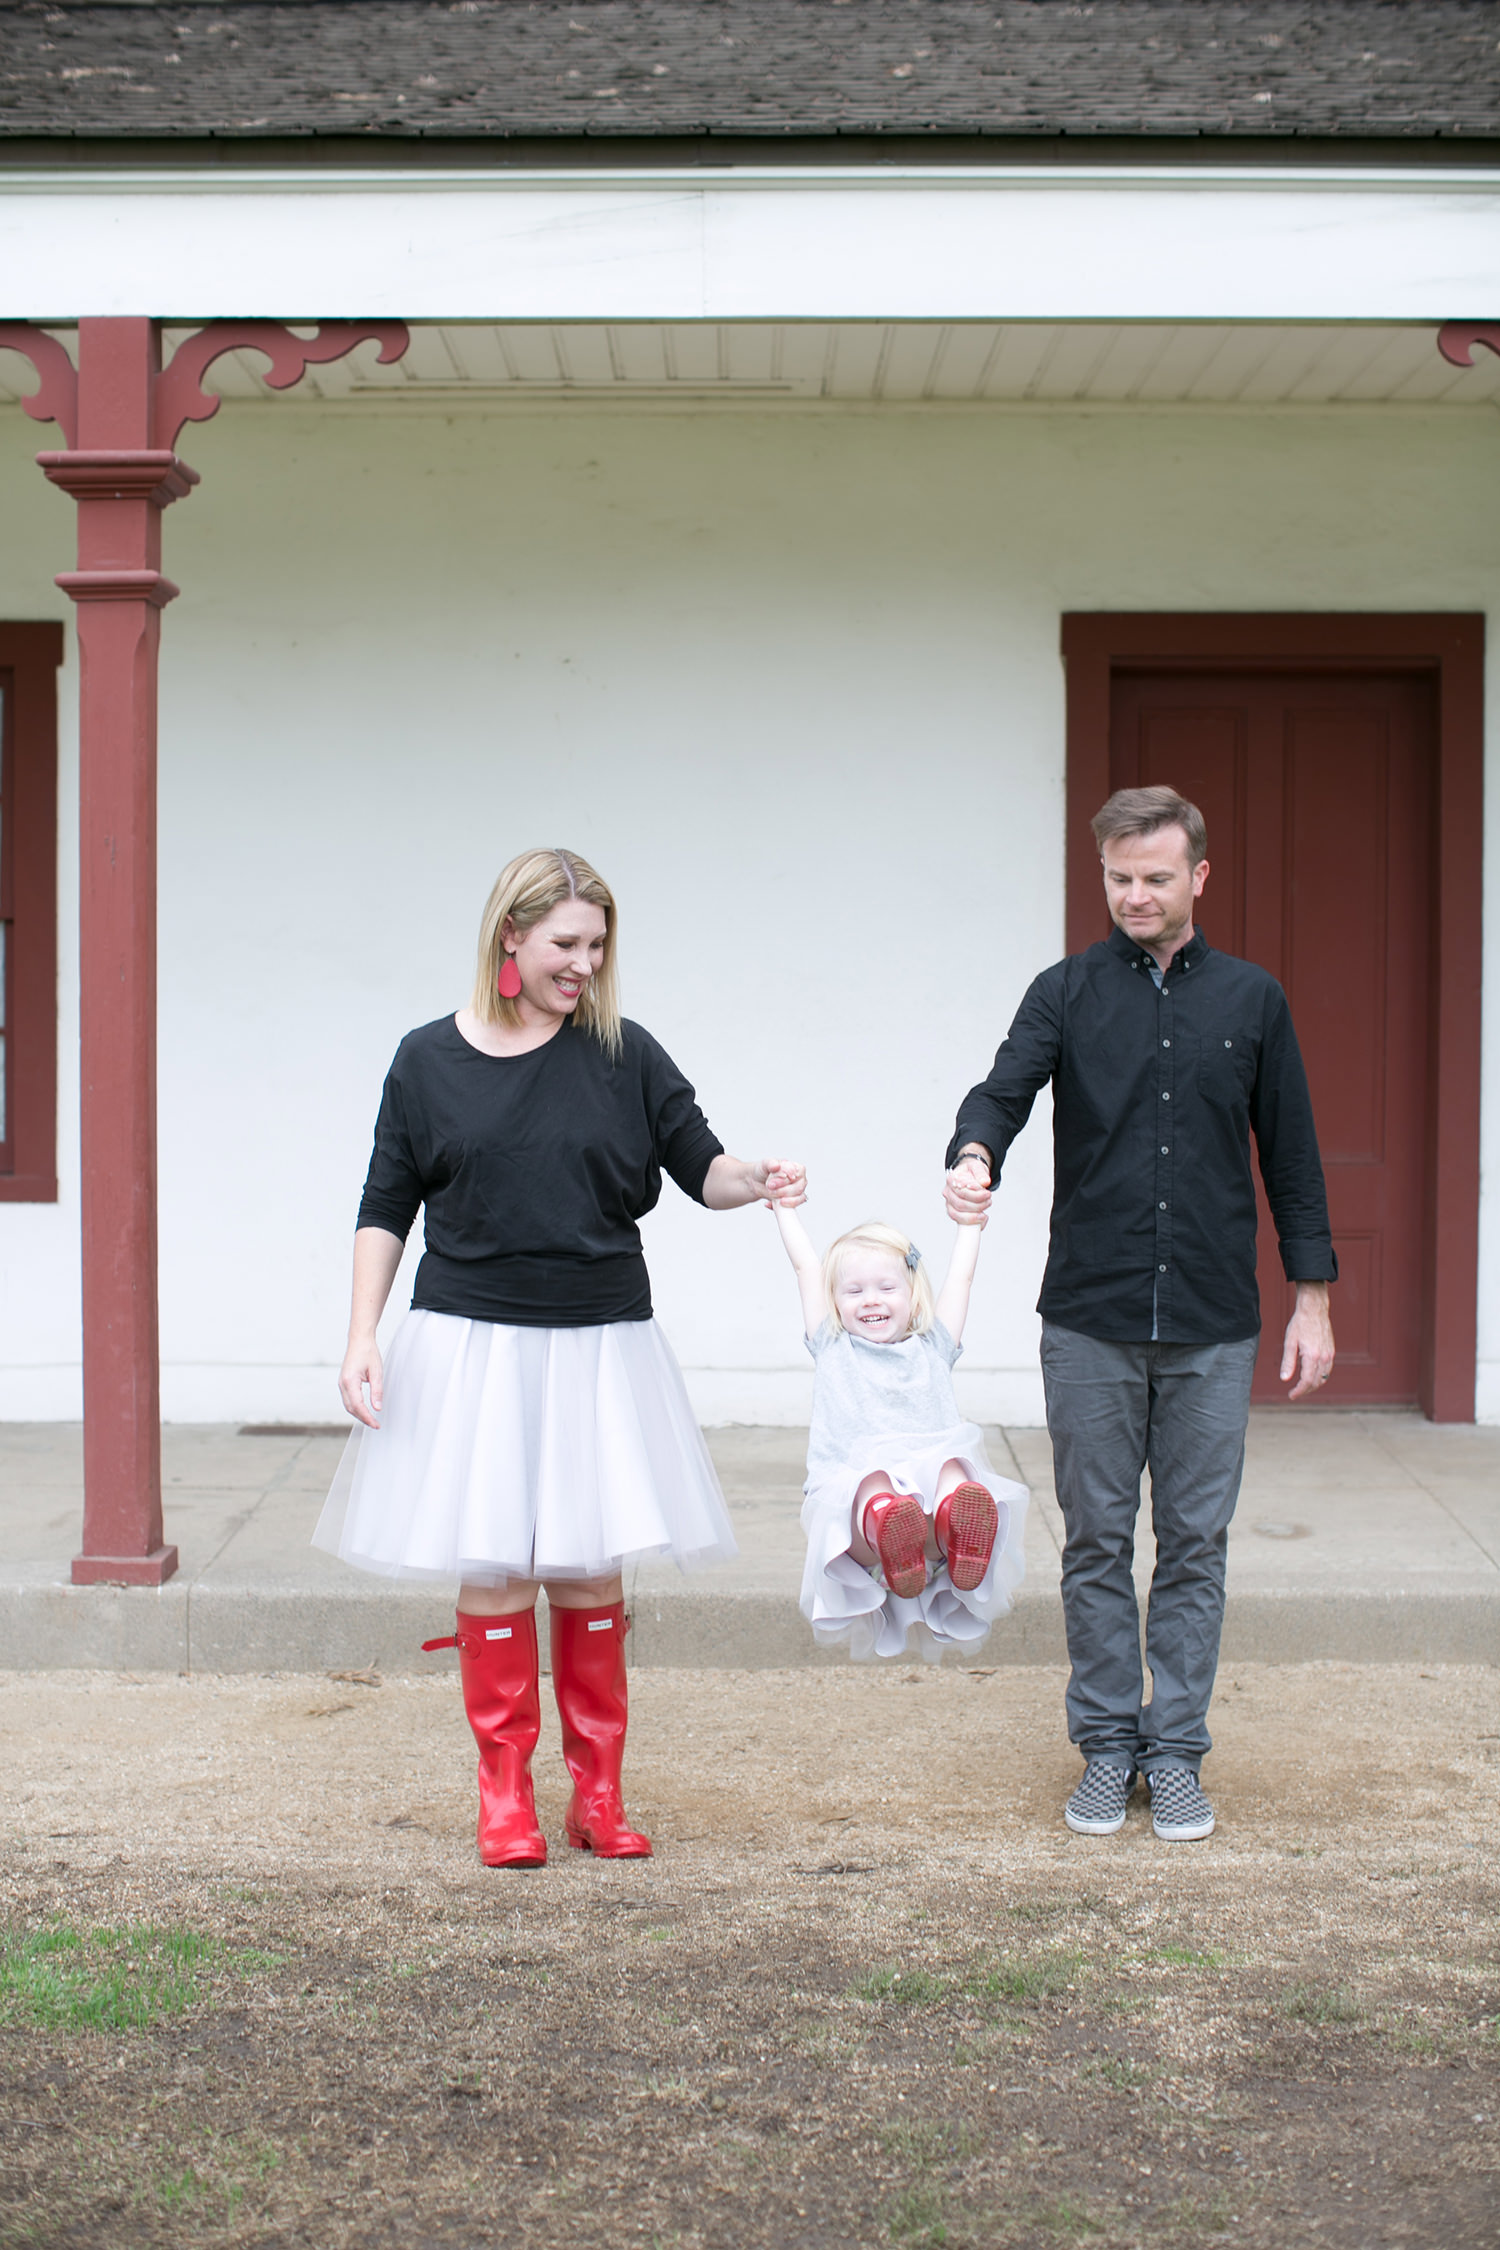 Family Photo Ideas like these make picking your family picture outfits easier than ever!  Check out our tips for how to look your best!